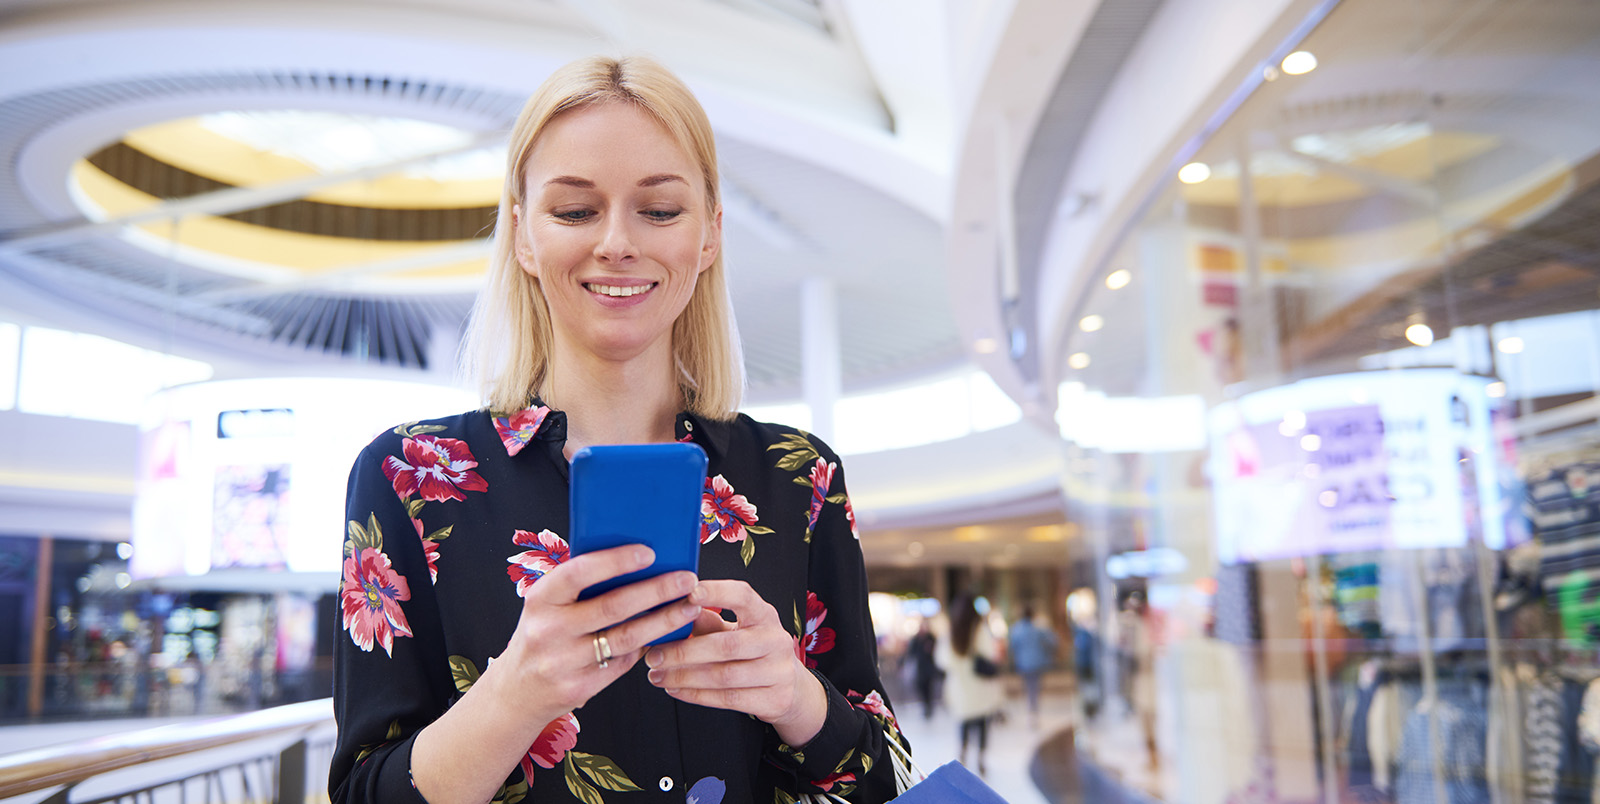 3 Ways Retail Industry Can Use AI in Product Recommendation